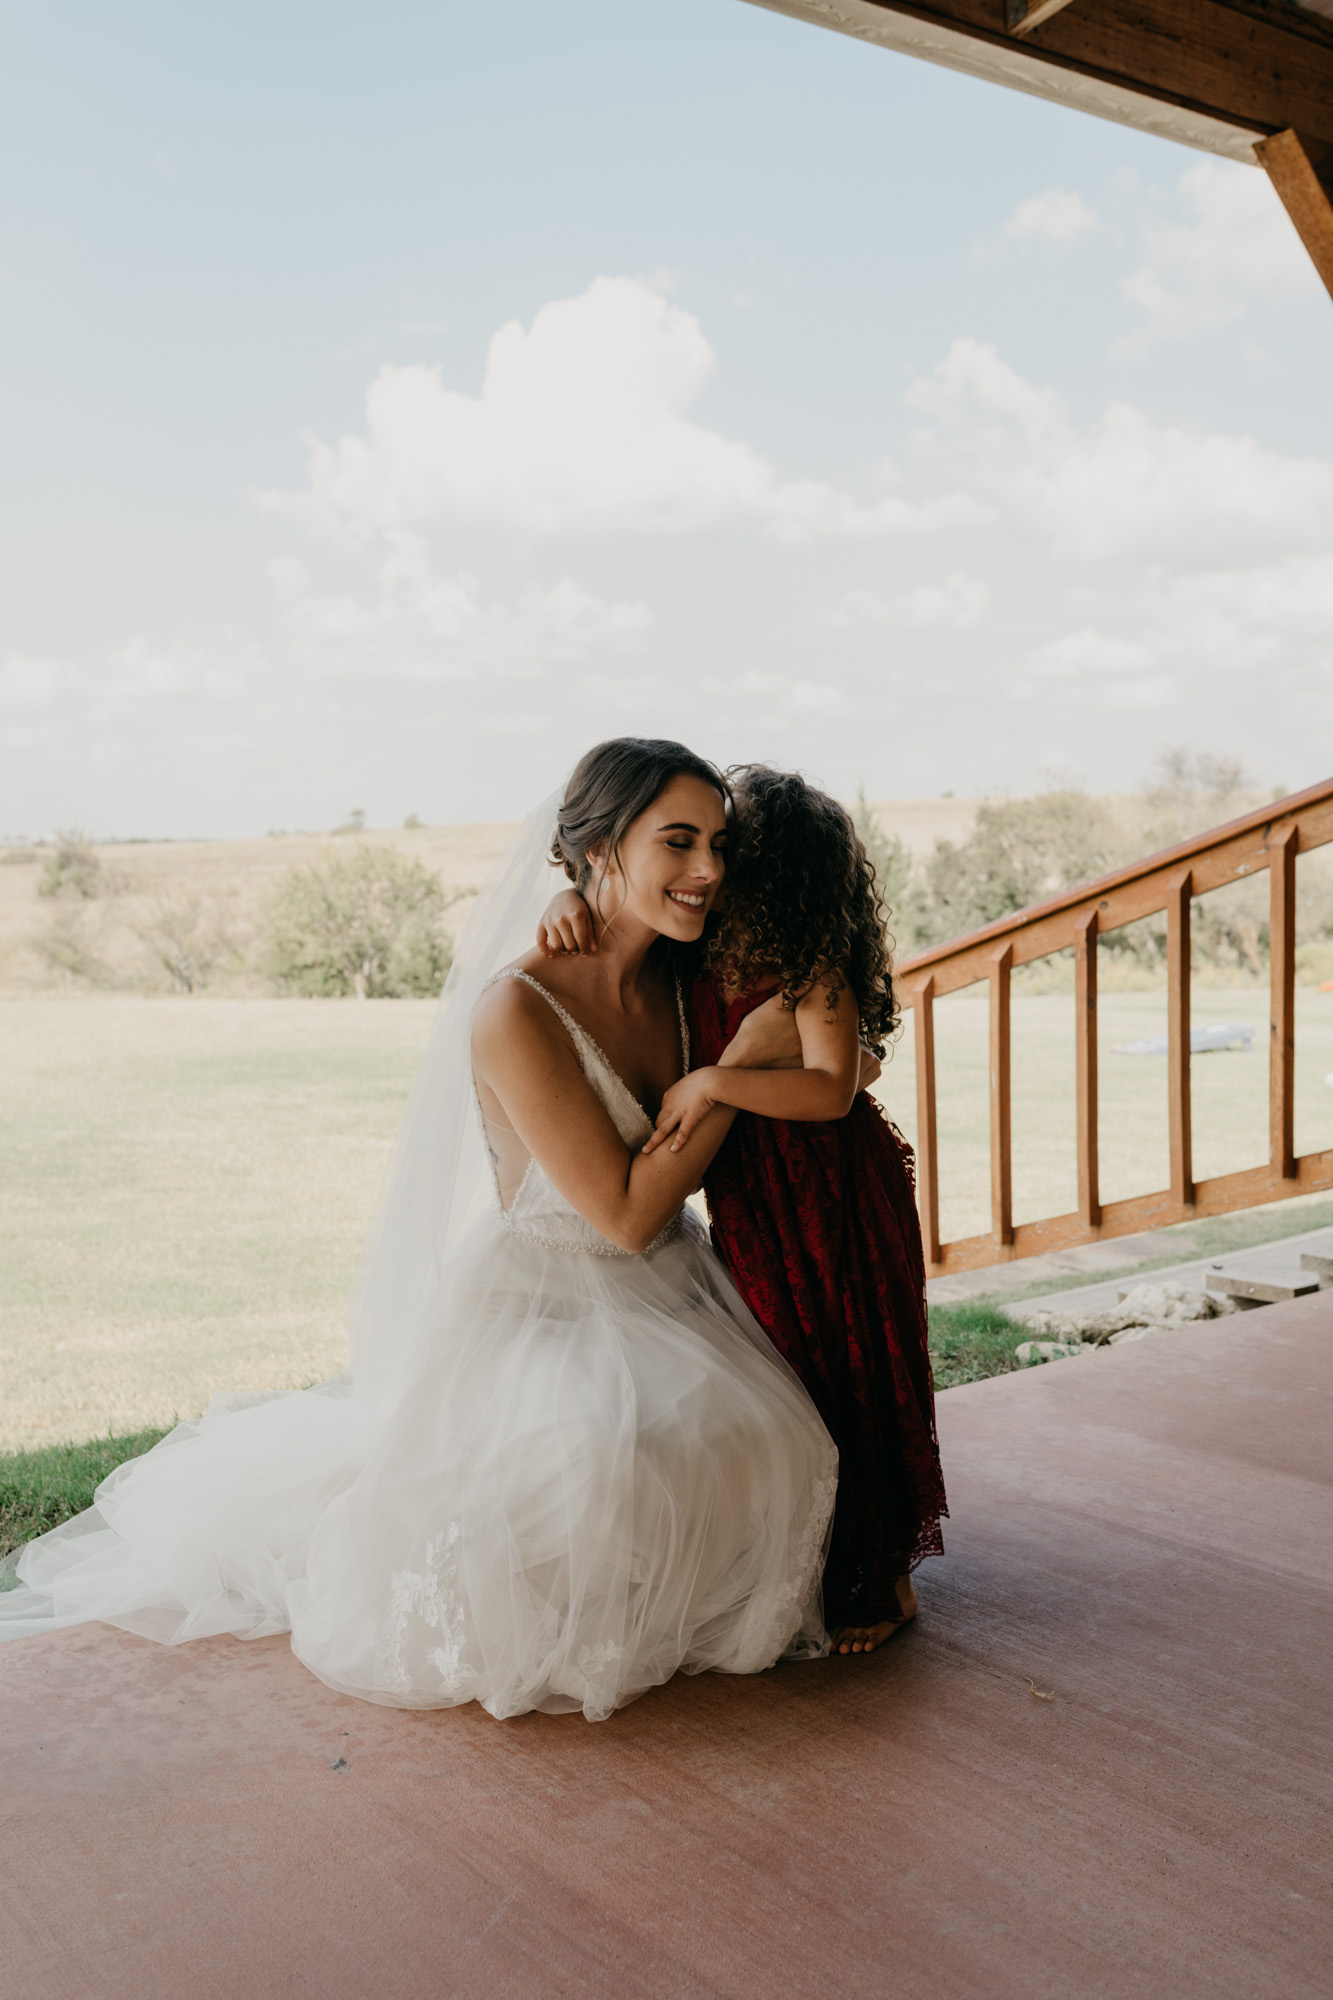 Bride hugging flower girl on porch of wedding venue